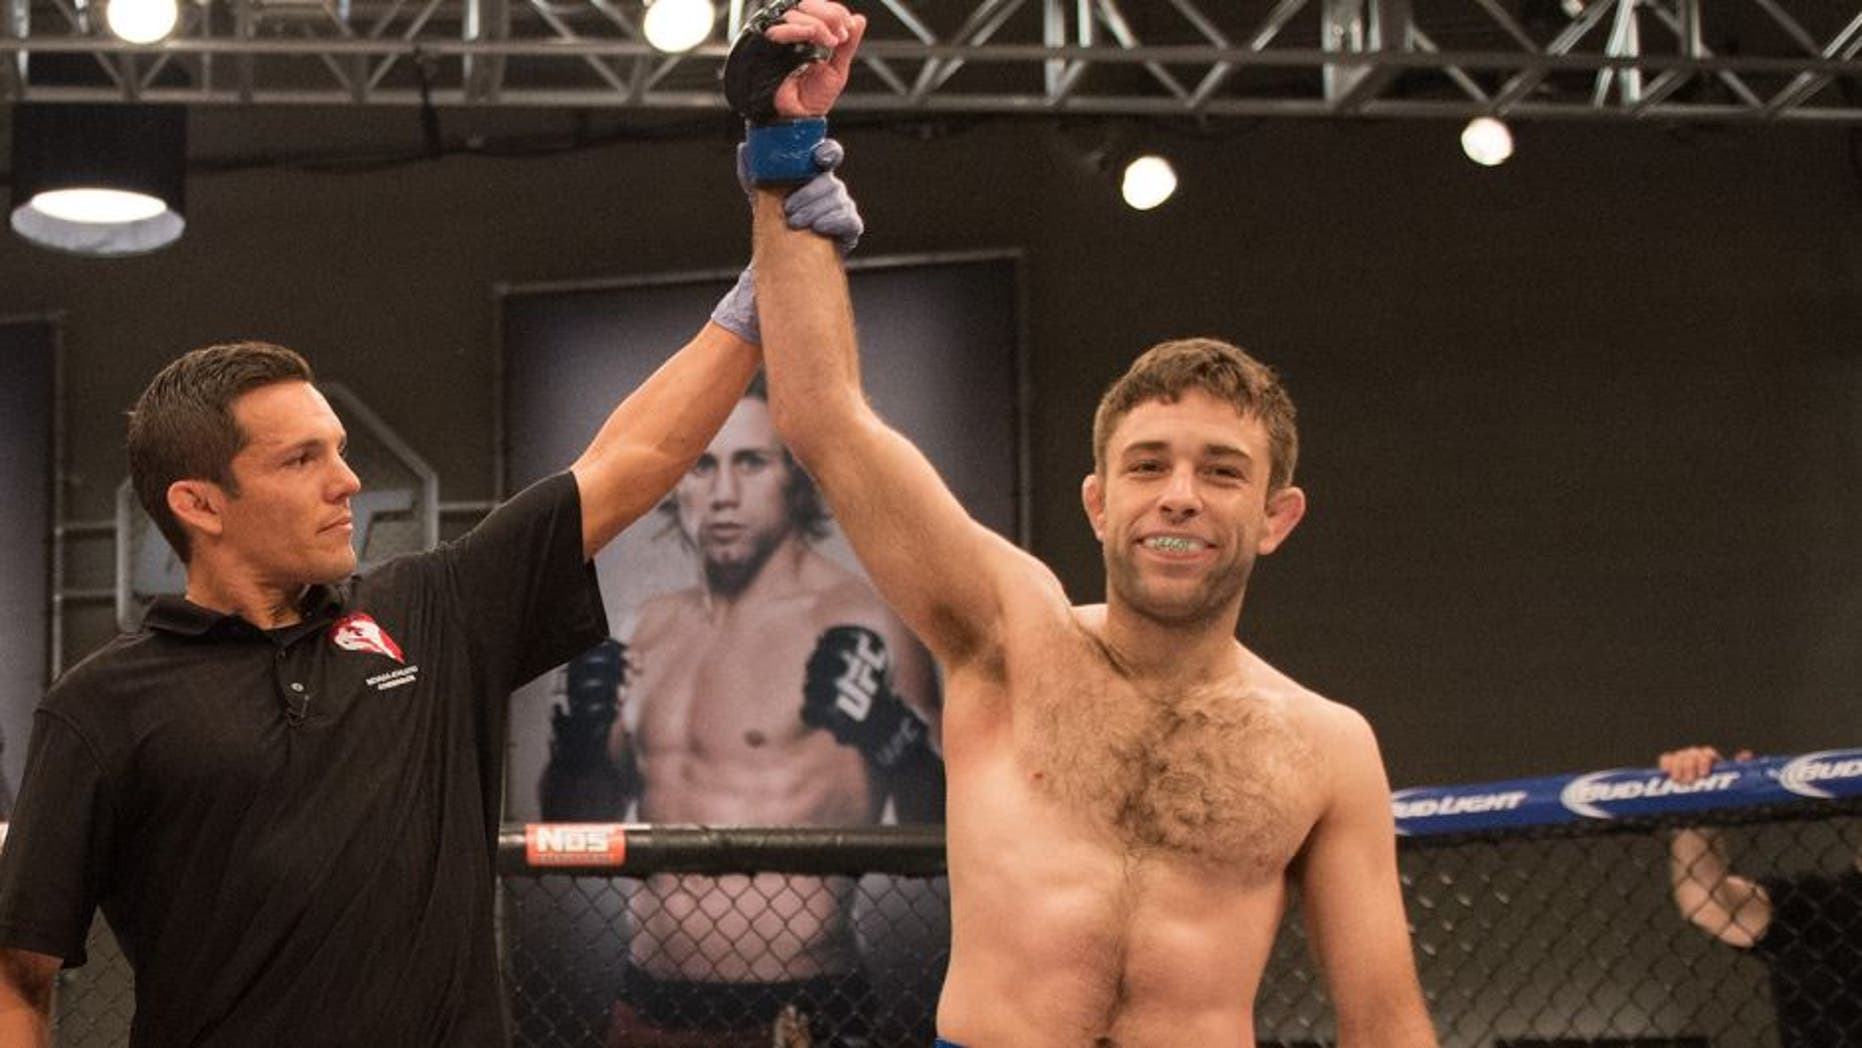 LAS VEGAS, NV - JULY 24: (R-L) Ryan Hall celebrates his submission victory over Frantz Slioa during the filming of The Ultimate Fighter: Team McGregor vs Team Faber at the UFC TUF Gym on July 24, 2015 in Las Vegas, Nevada. (Photo by Brandon Magnus/Zuffa LLC/Zuffa LLC via Getty Images)